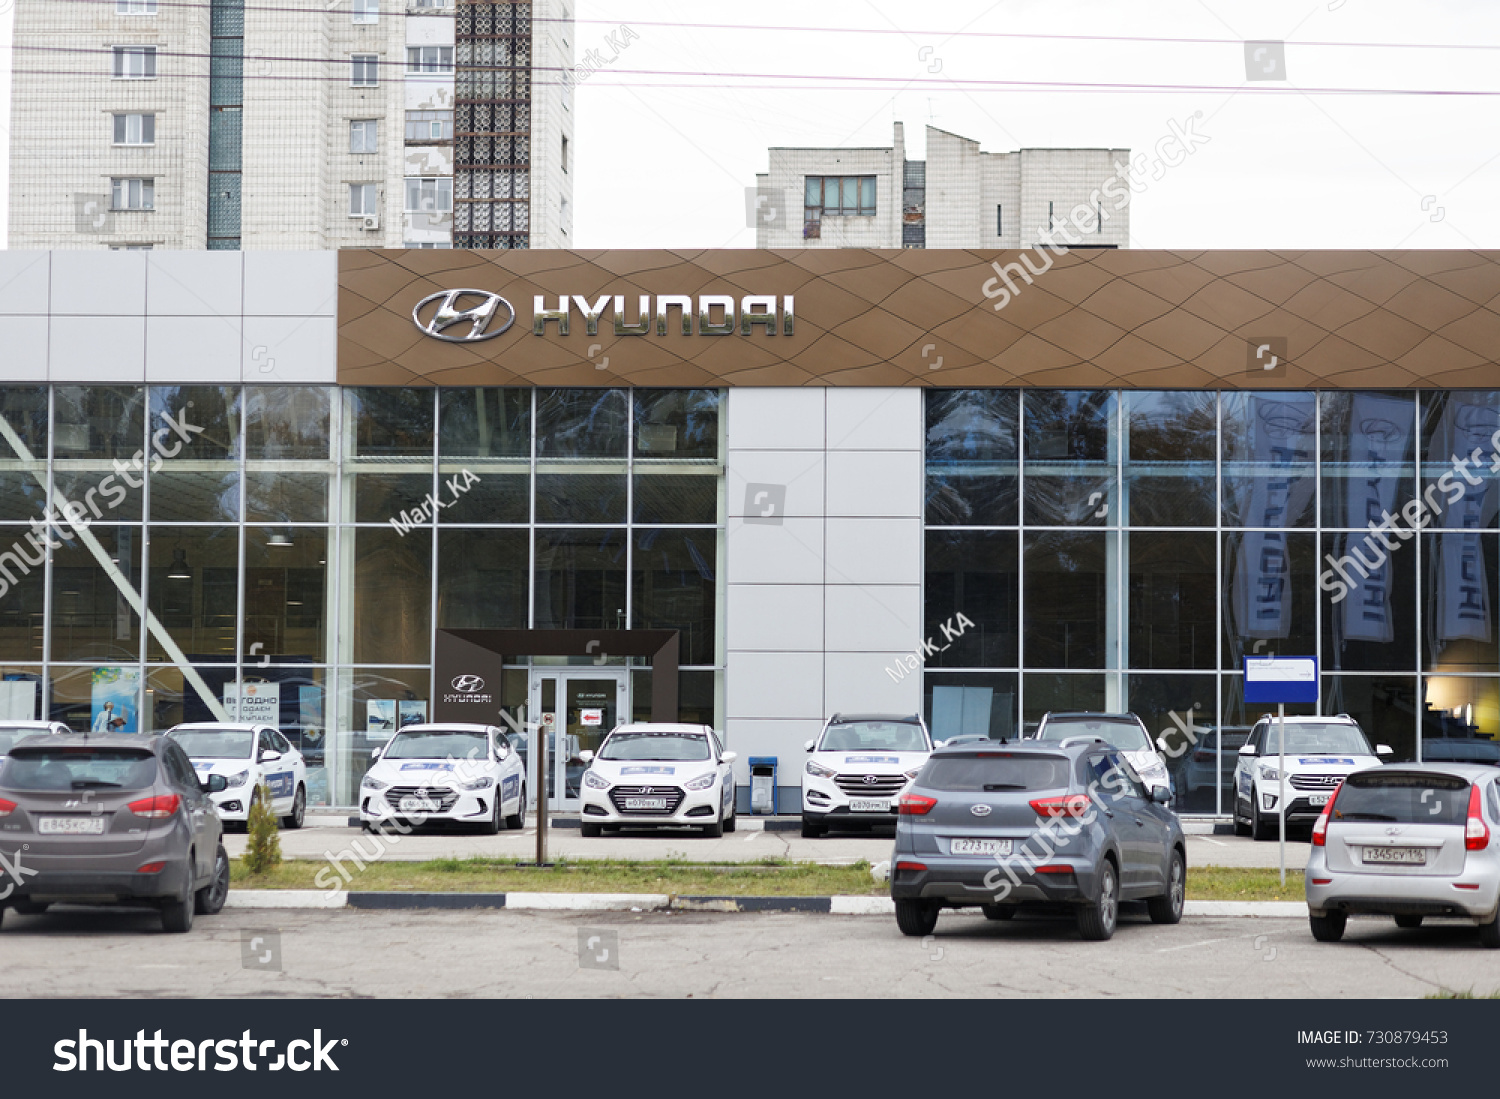 Ulyanovsk russia october 07 2017 building stock photo 730879453 ulyanovsk russia october 07 2017 building of hyundai car selling and service biocorpaavc Images